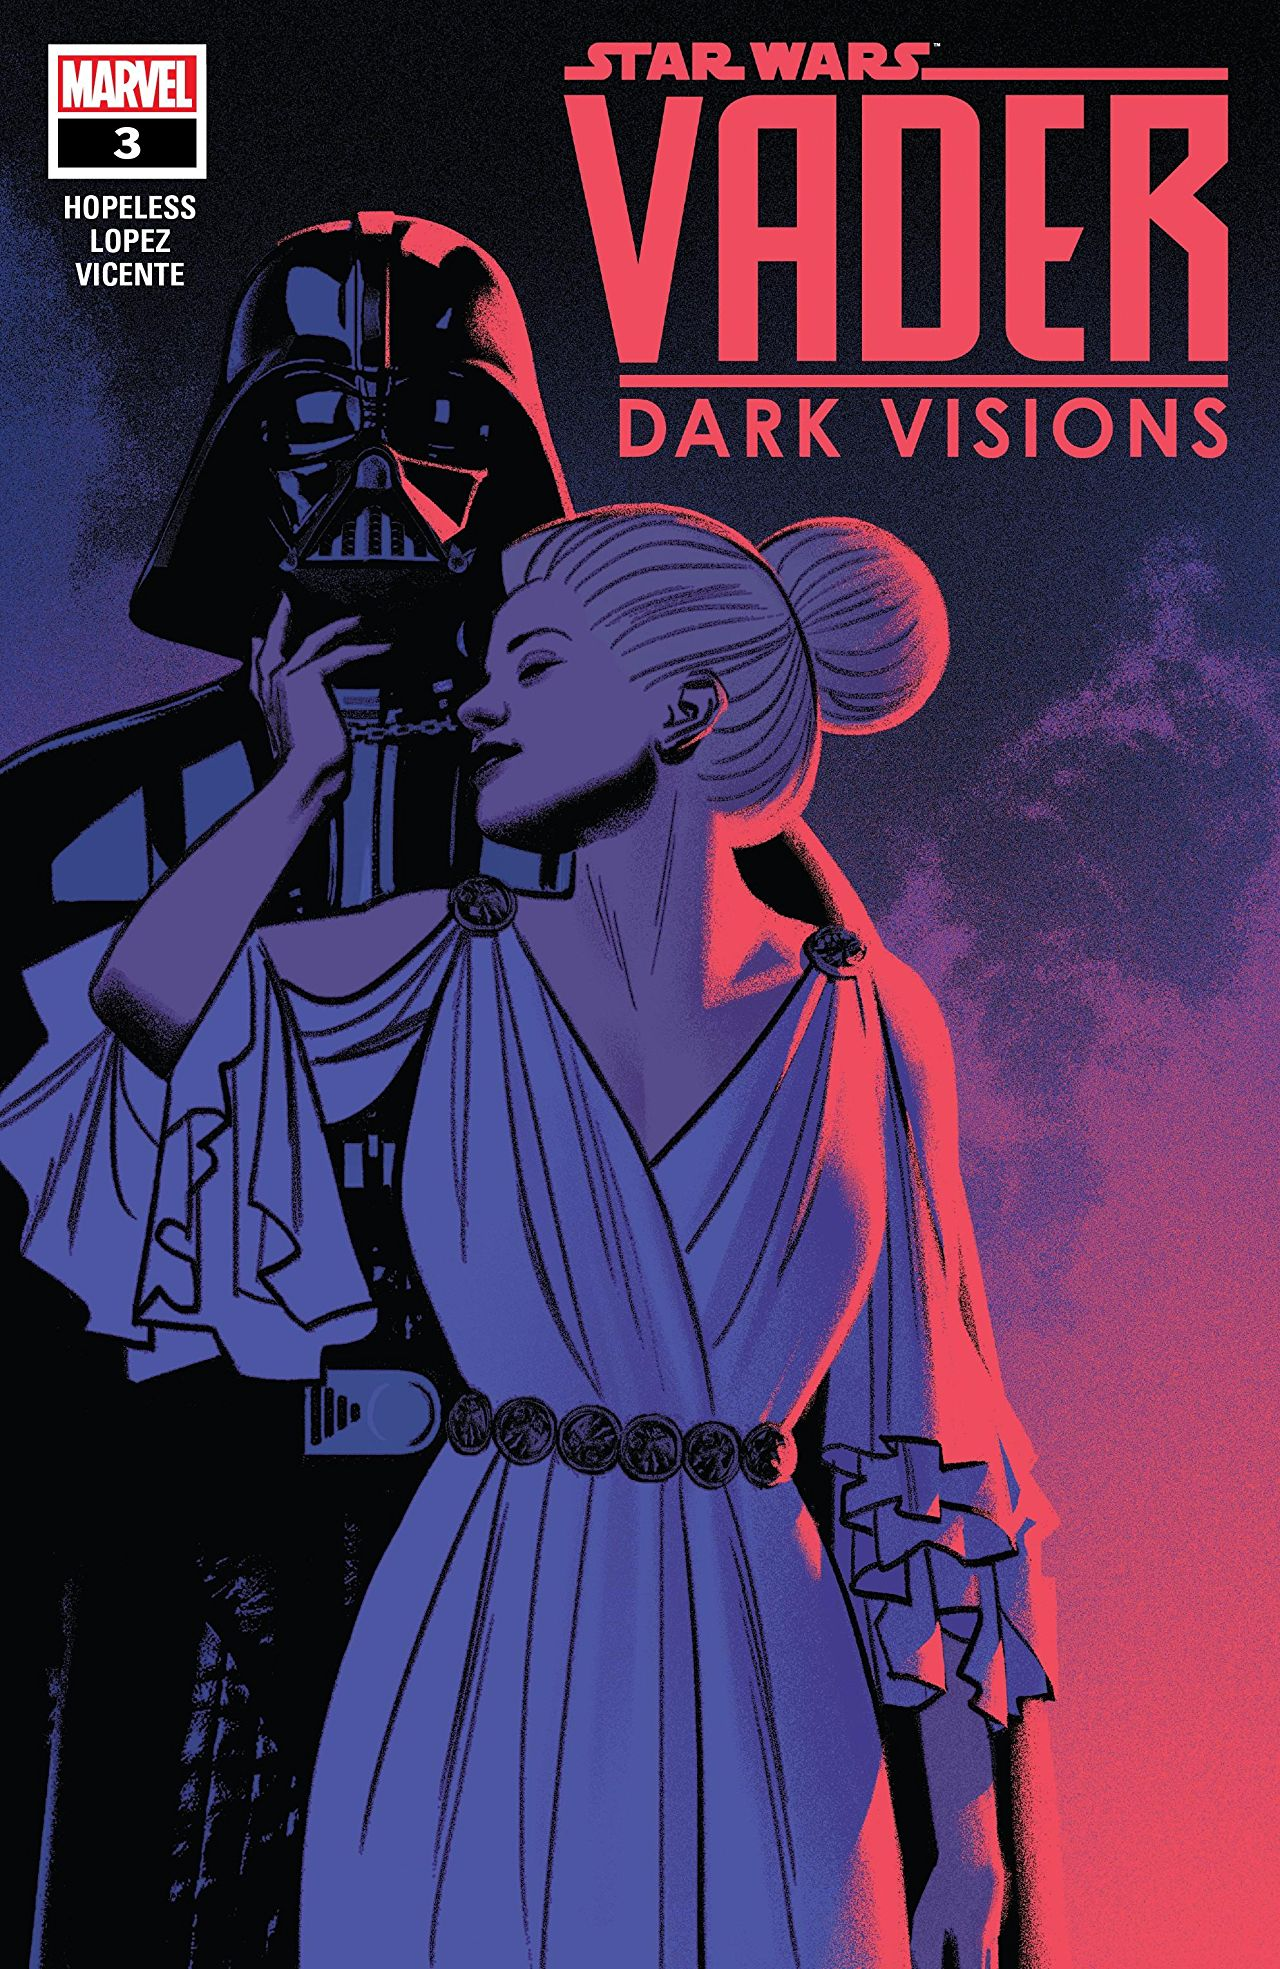 Star Wars: Vader - Dark Visions Vol 1 3